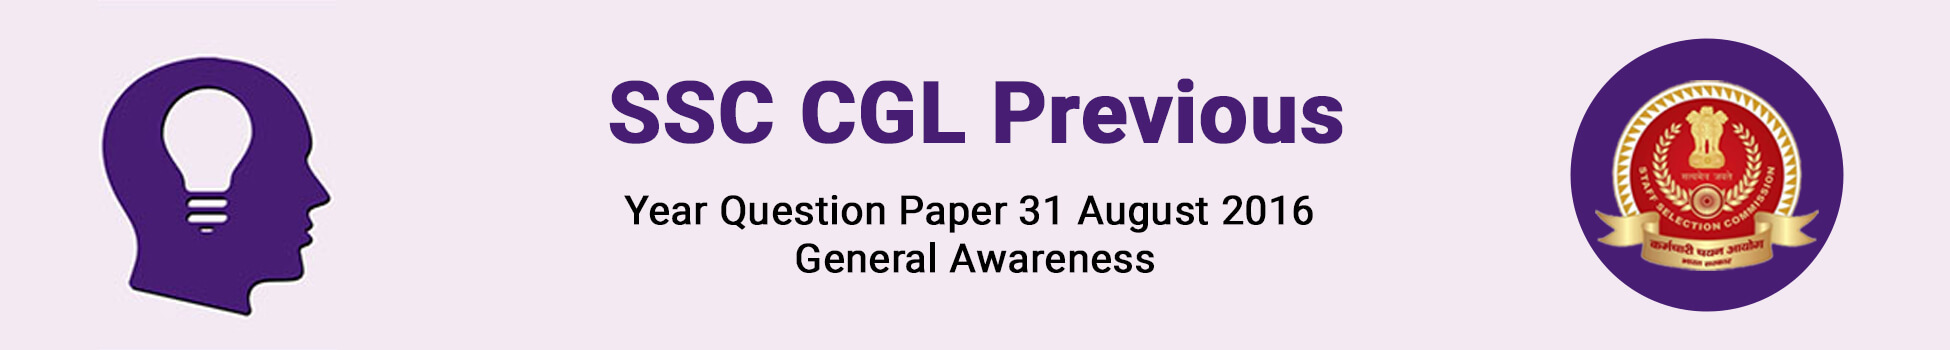 SSC CGL Previous Year Question Paper 31 August 2016 - General Awareness